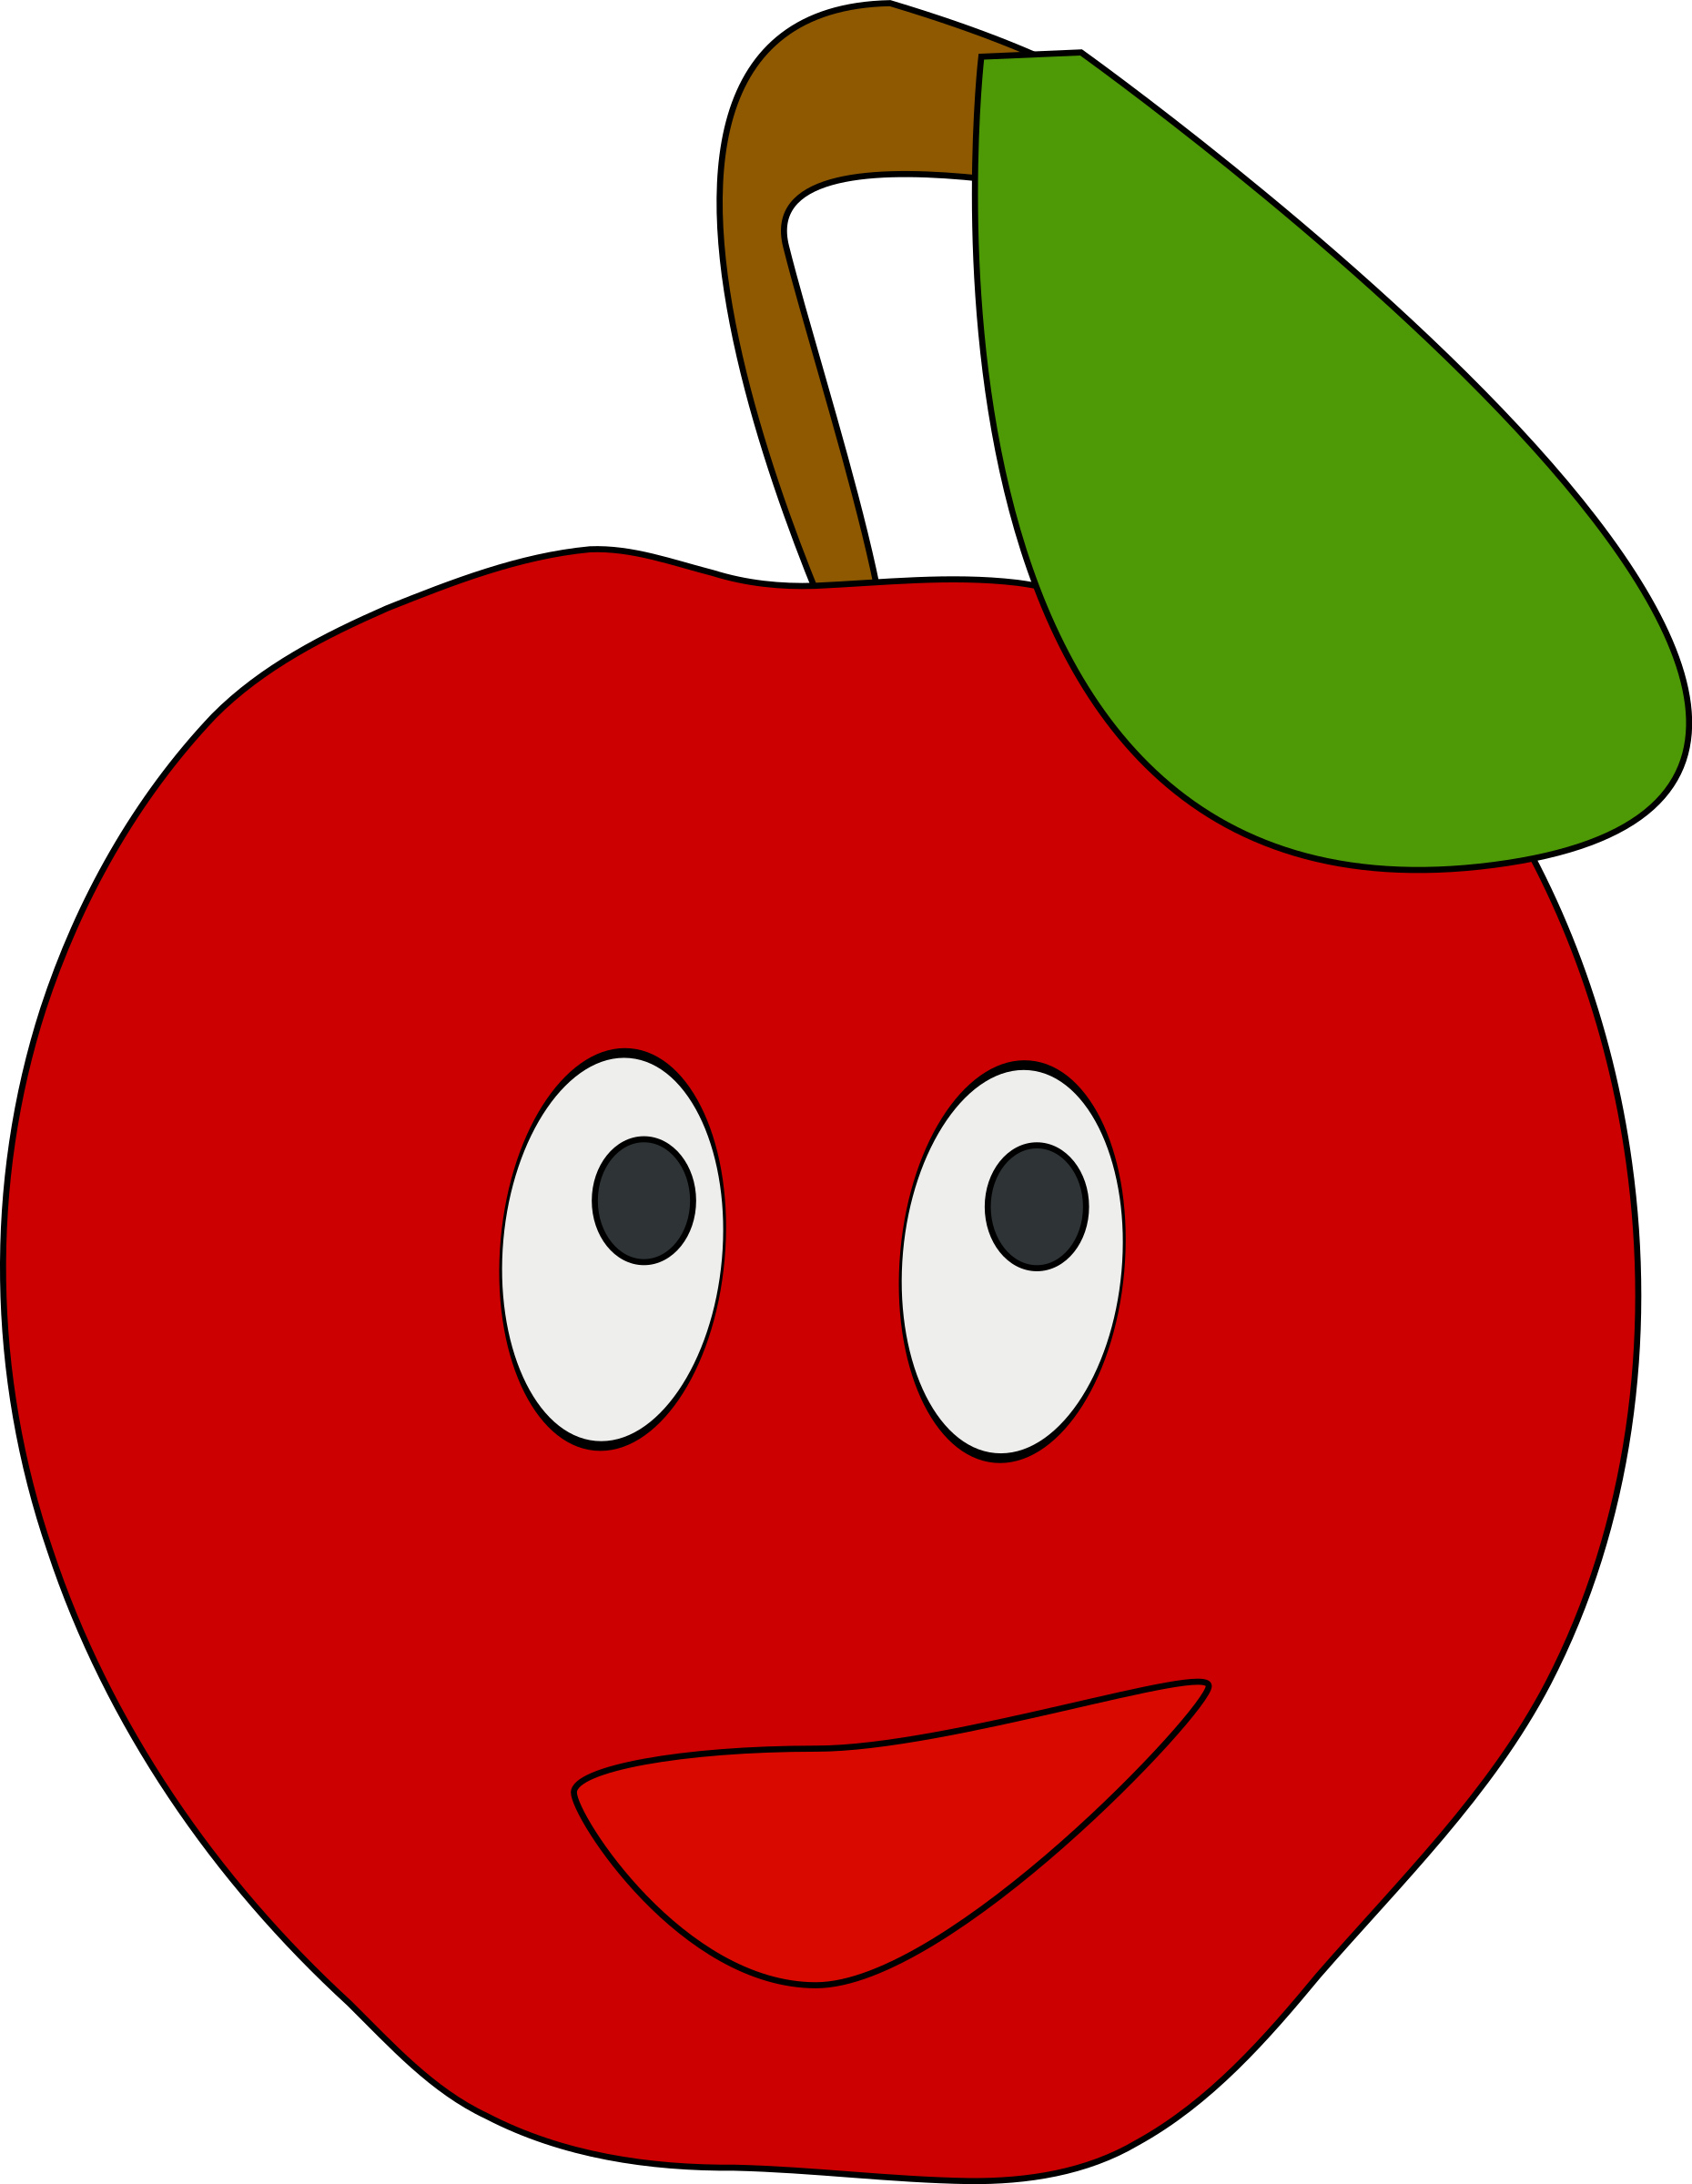 Tomatoes clipart angry. Smiling apple big image